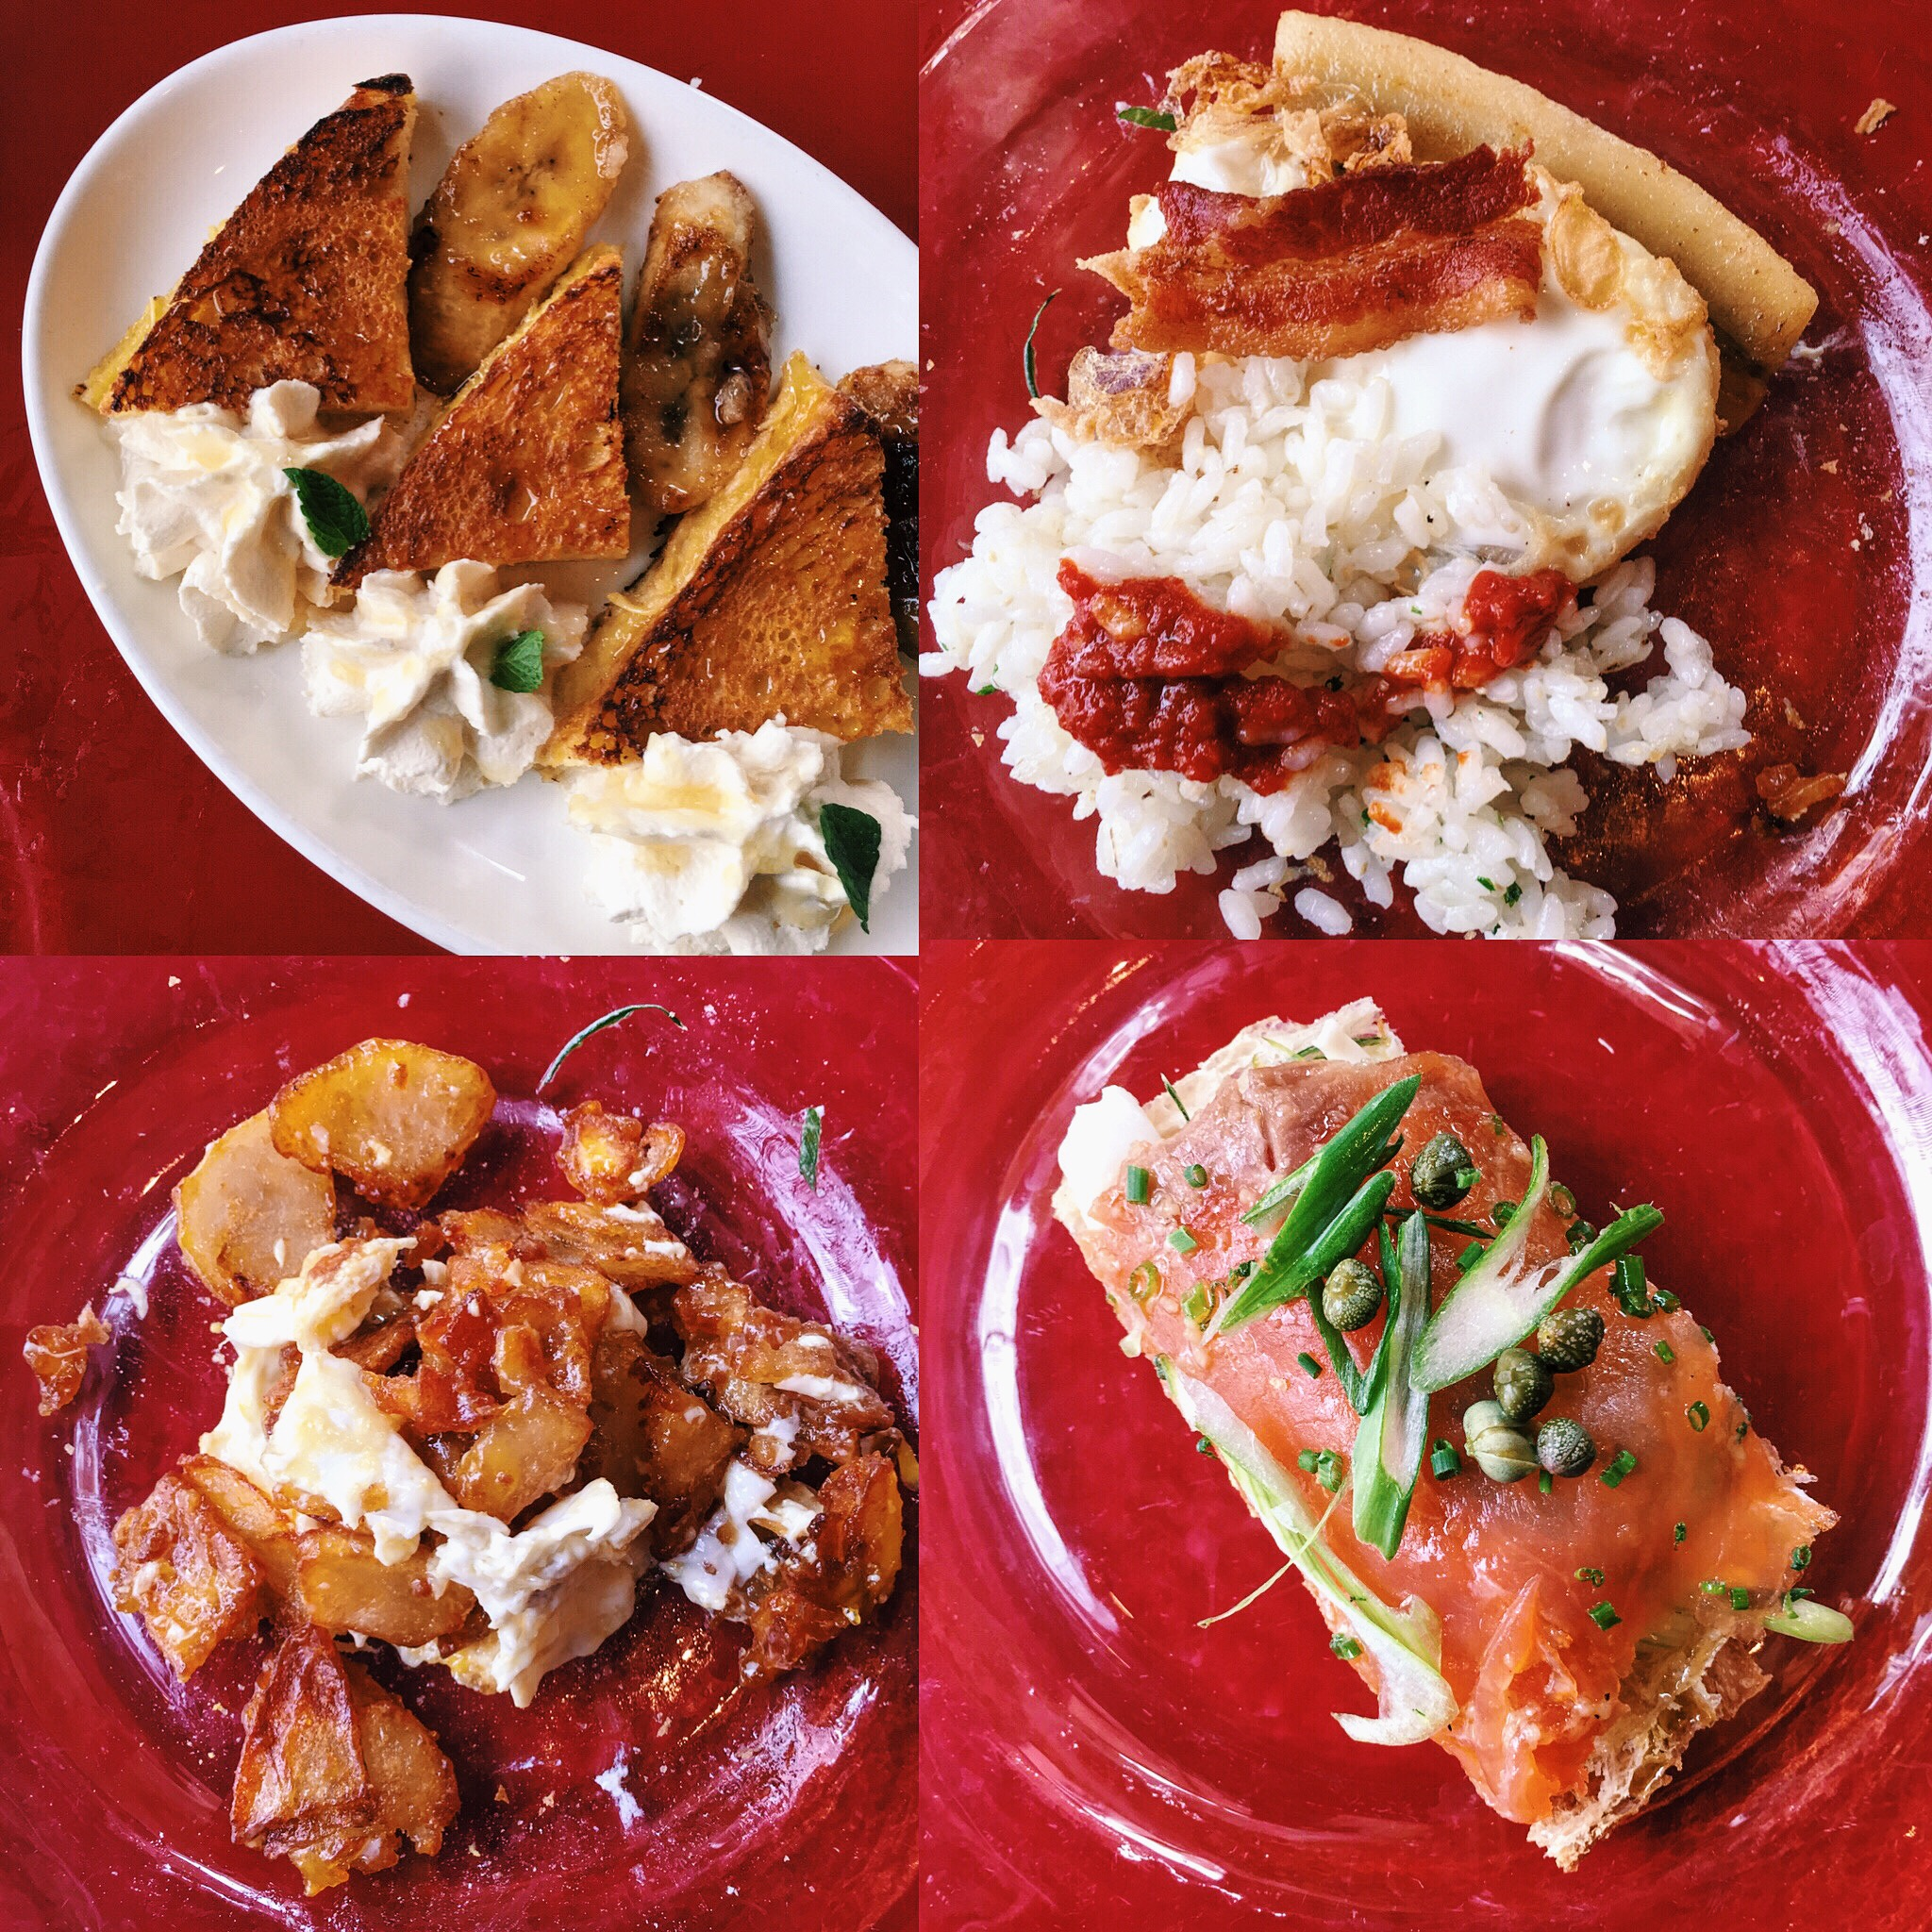 Left to right, top to bottom: french toast with plantains | rice, tomato jam, a poached egg, and iberico ham bacon | hash with eggs over easy and iberico ham bacon | cured salmon with green onions and capers